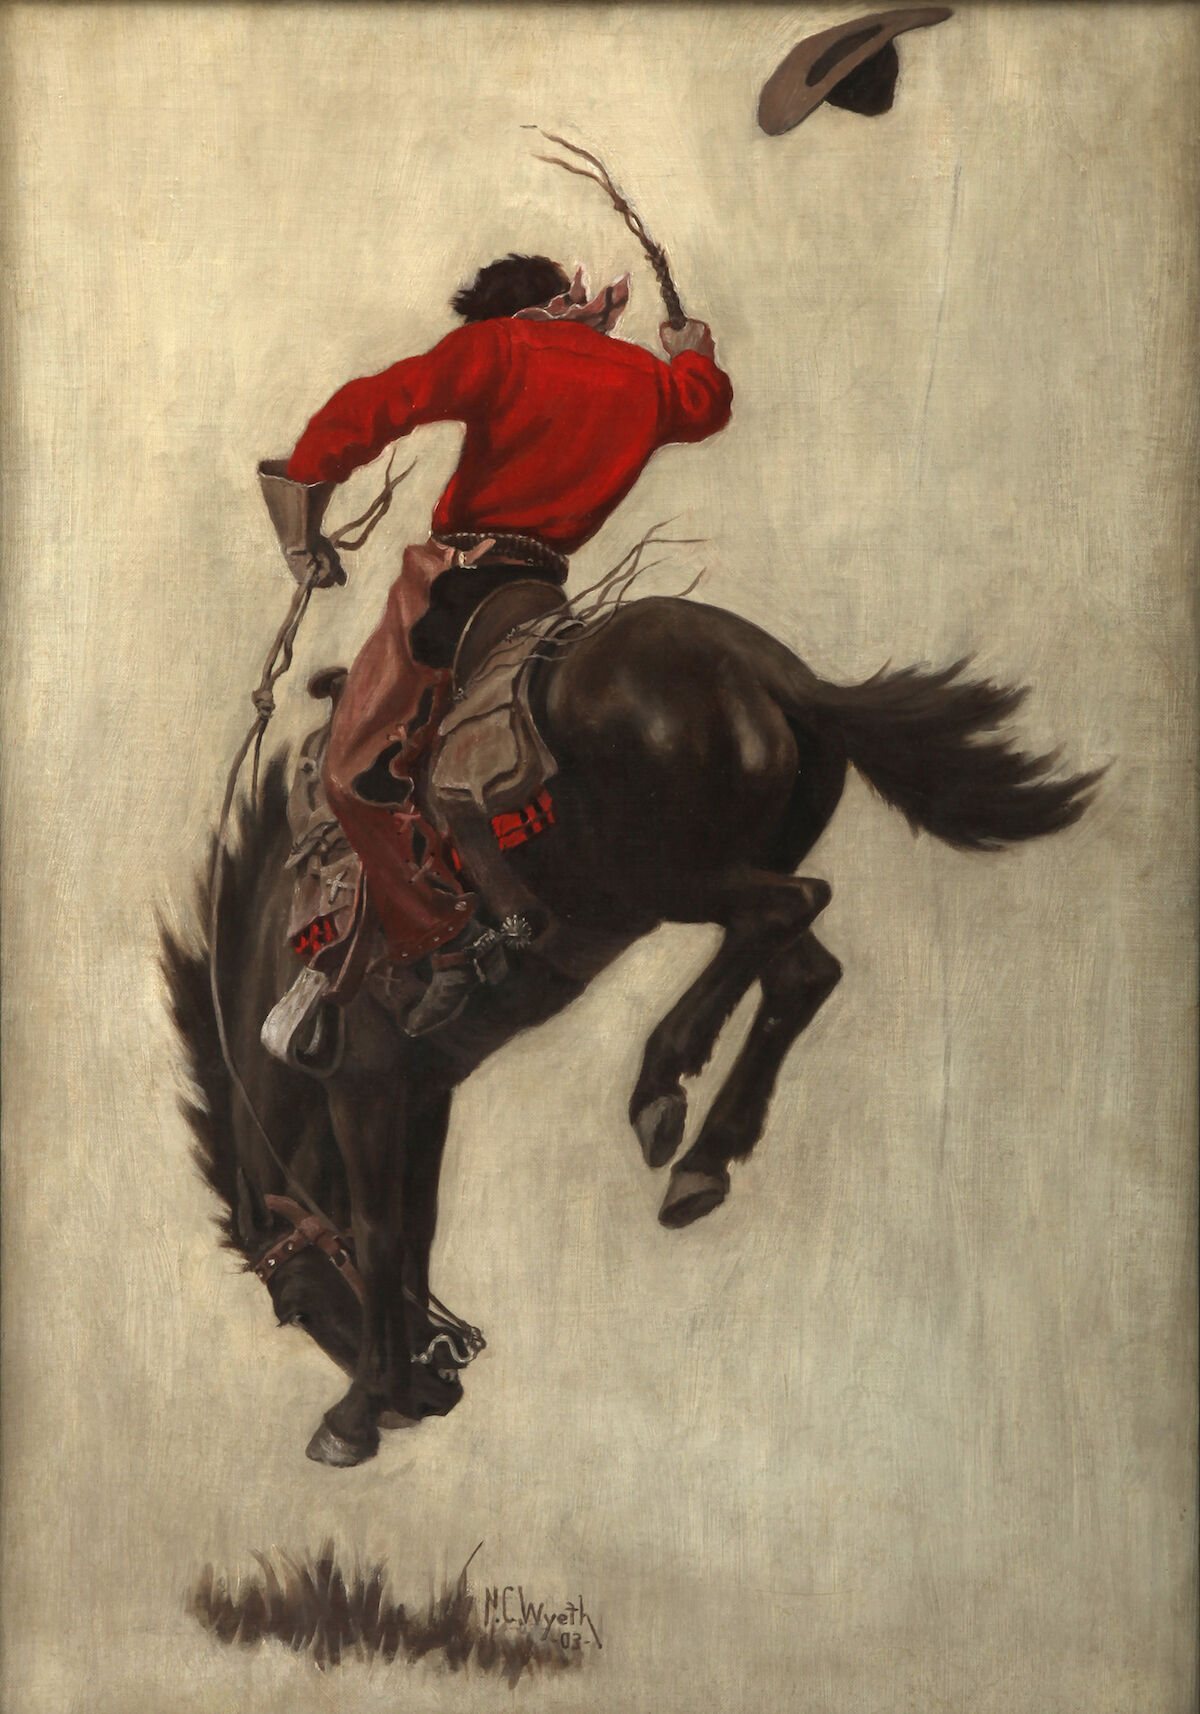 N. C. Wyeth, Saturday Evening Post, cover (Bucking Bronco), 1903. Courtesy of the Brandywine River Museum of Art.